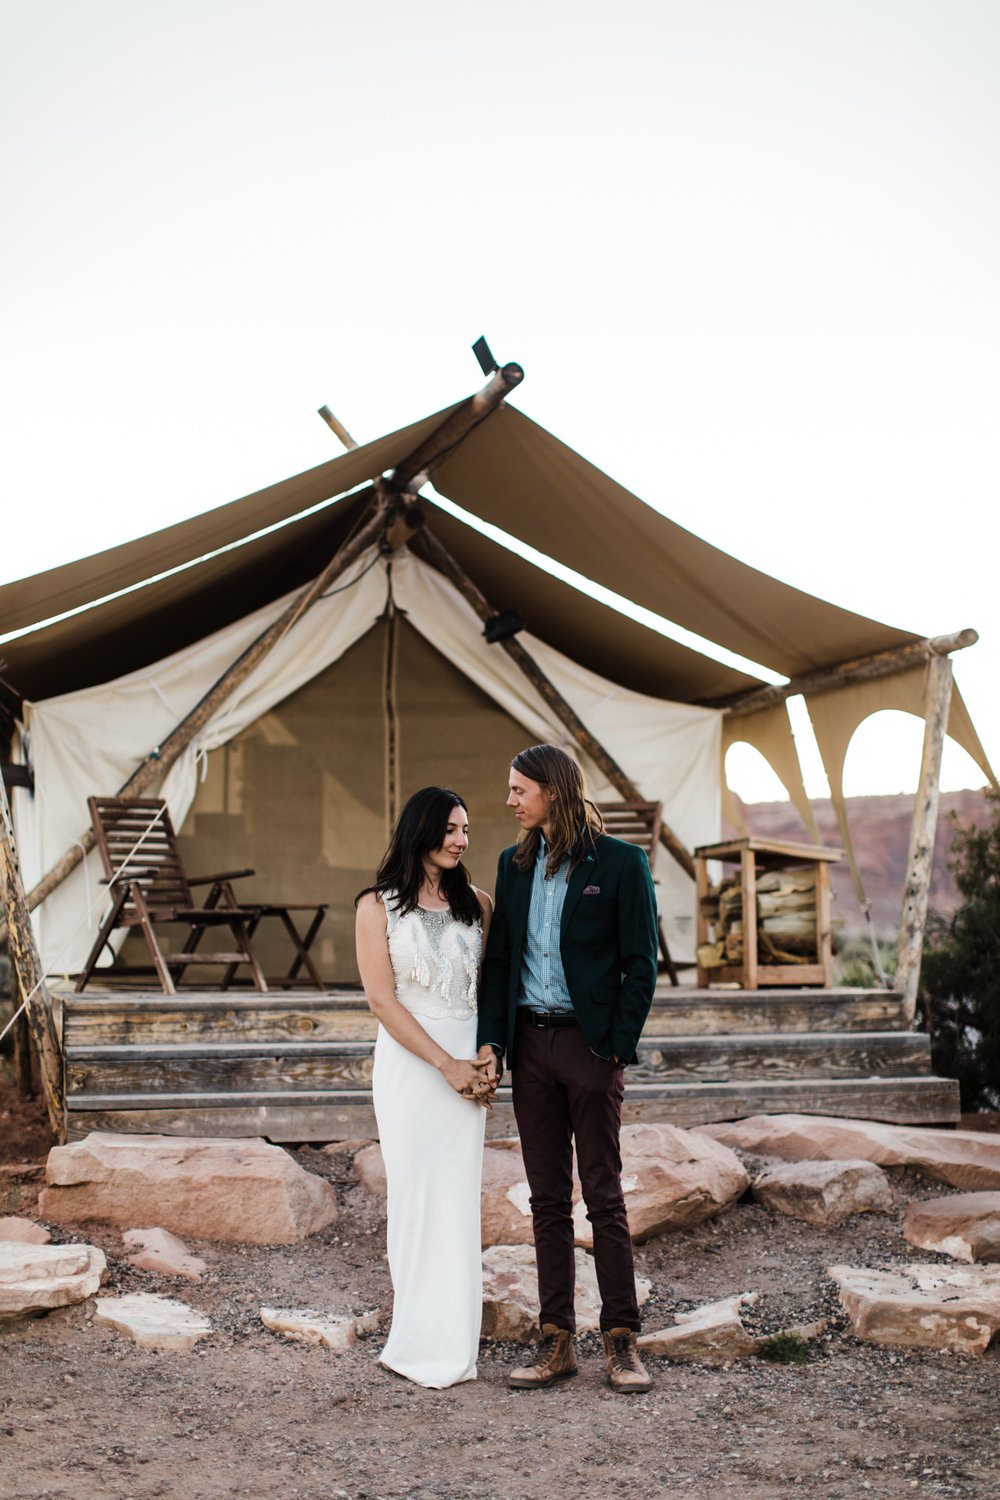 canyonlands national park elopement at moab under canvas | destination adventure wedding photographers | the hearnes adventure photography | www.thehearnes.com